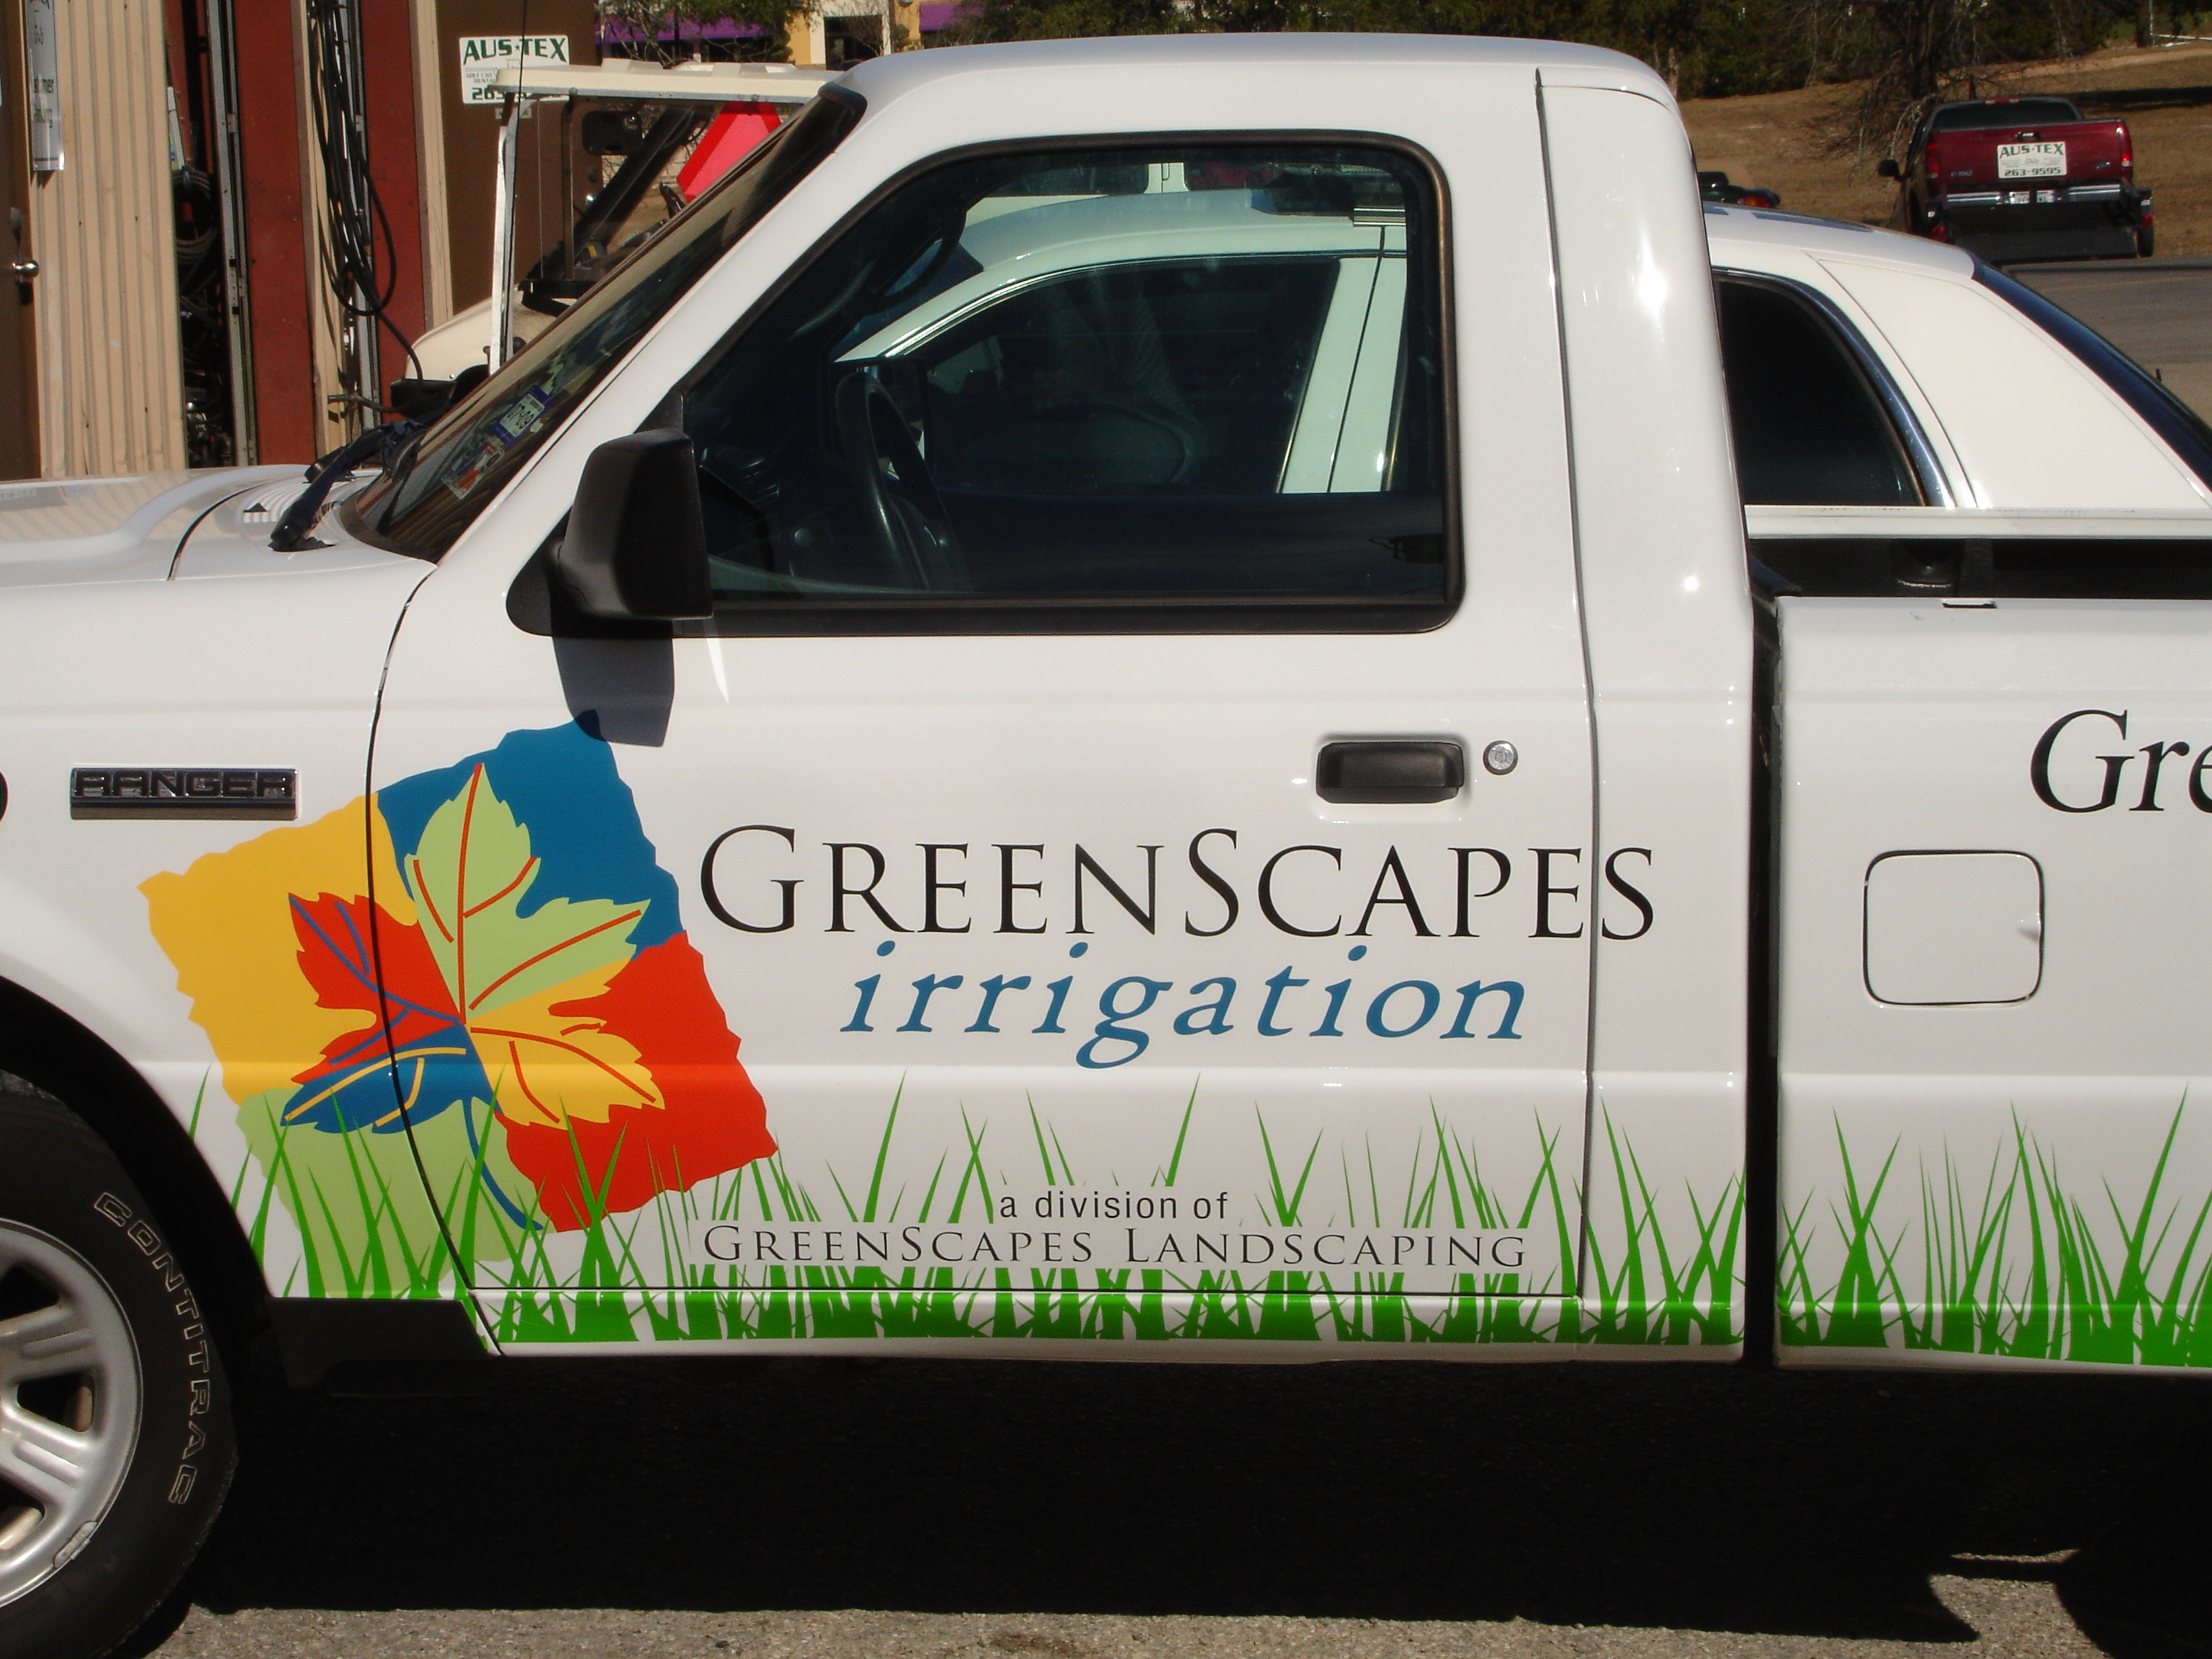 Greenscapes Irrigation Truck Graphic